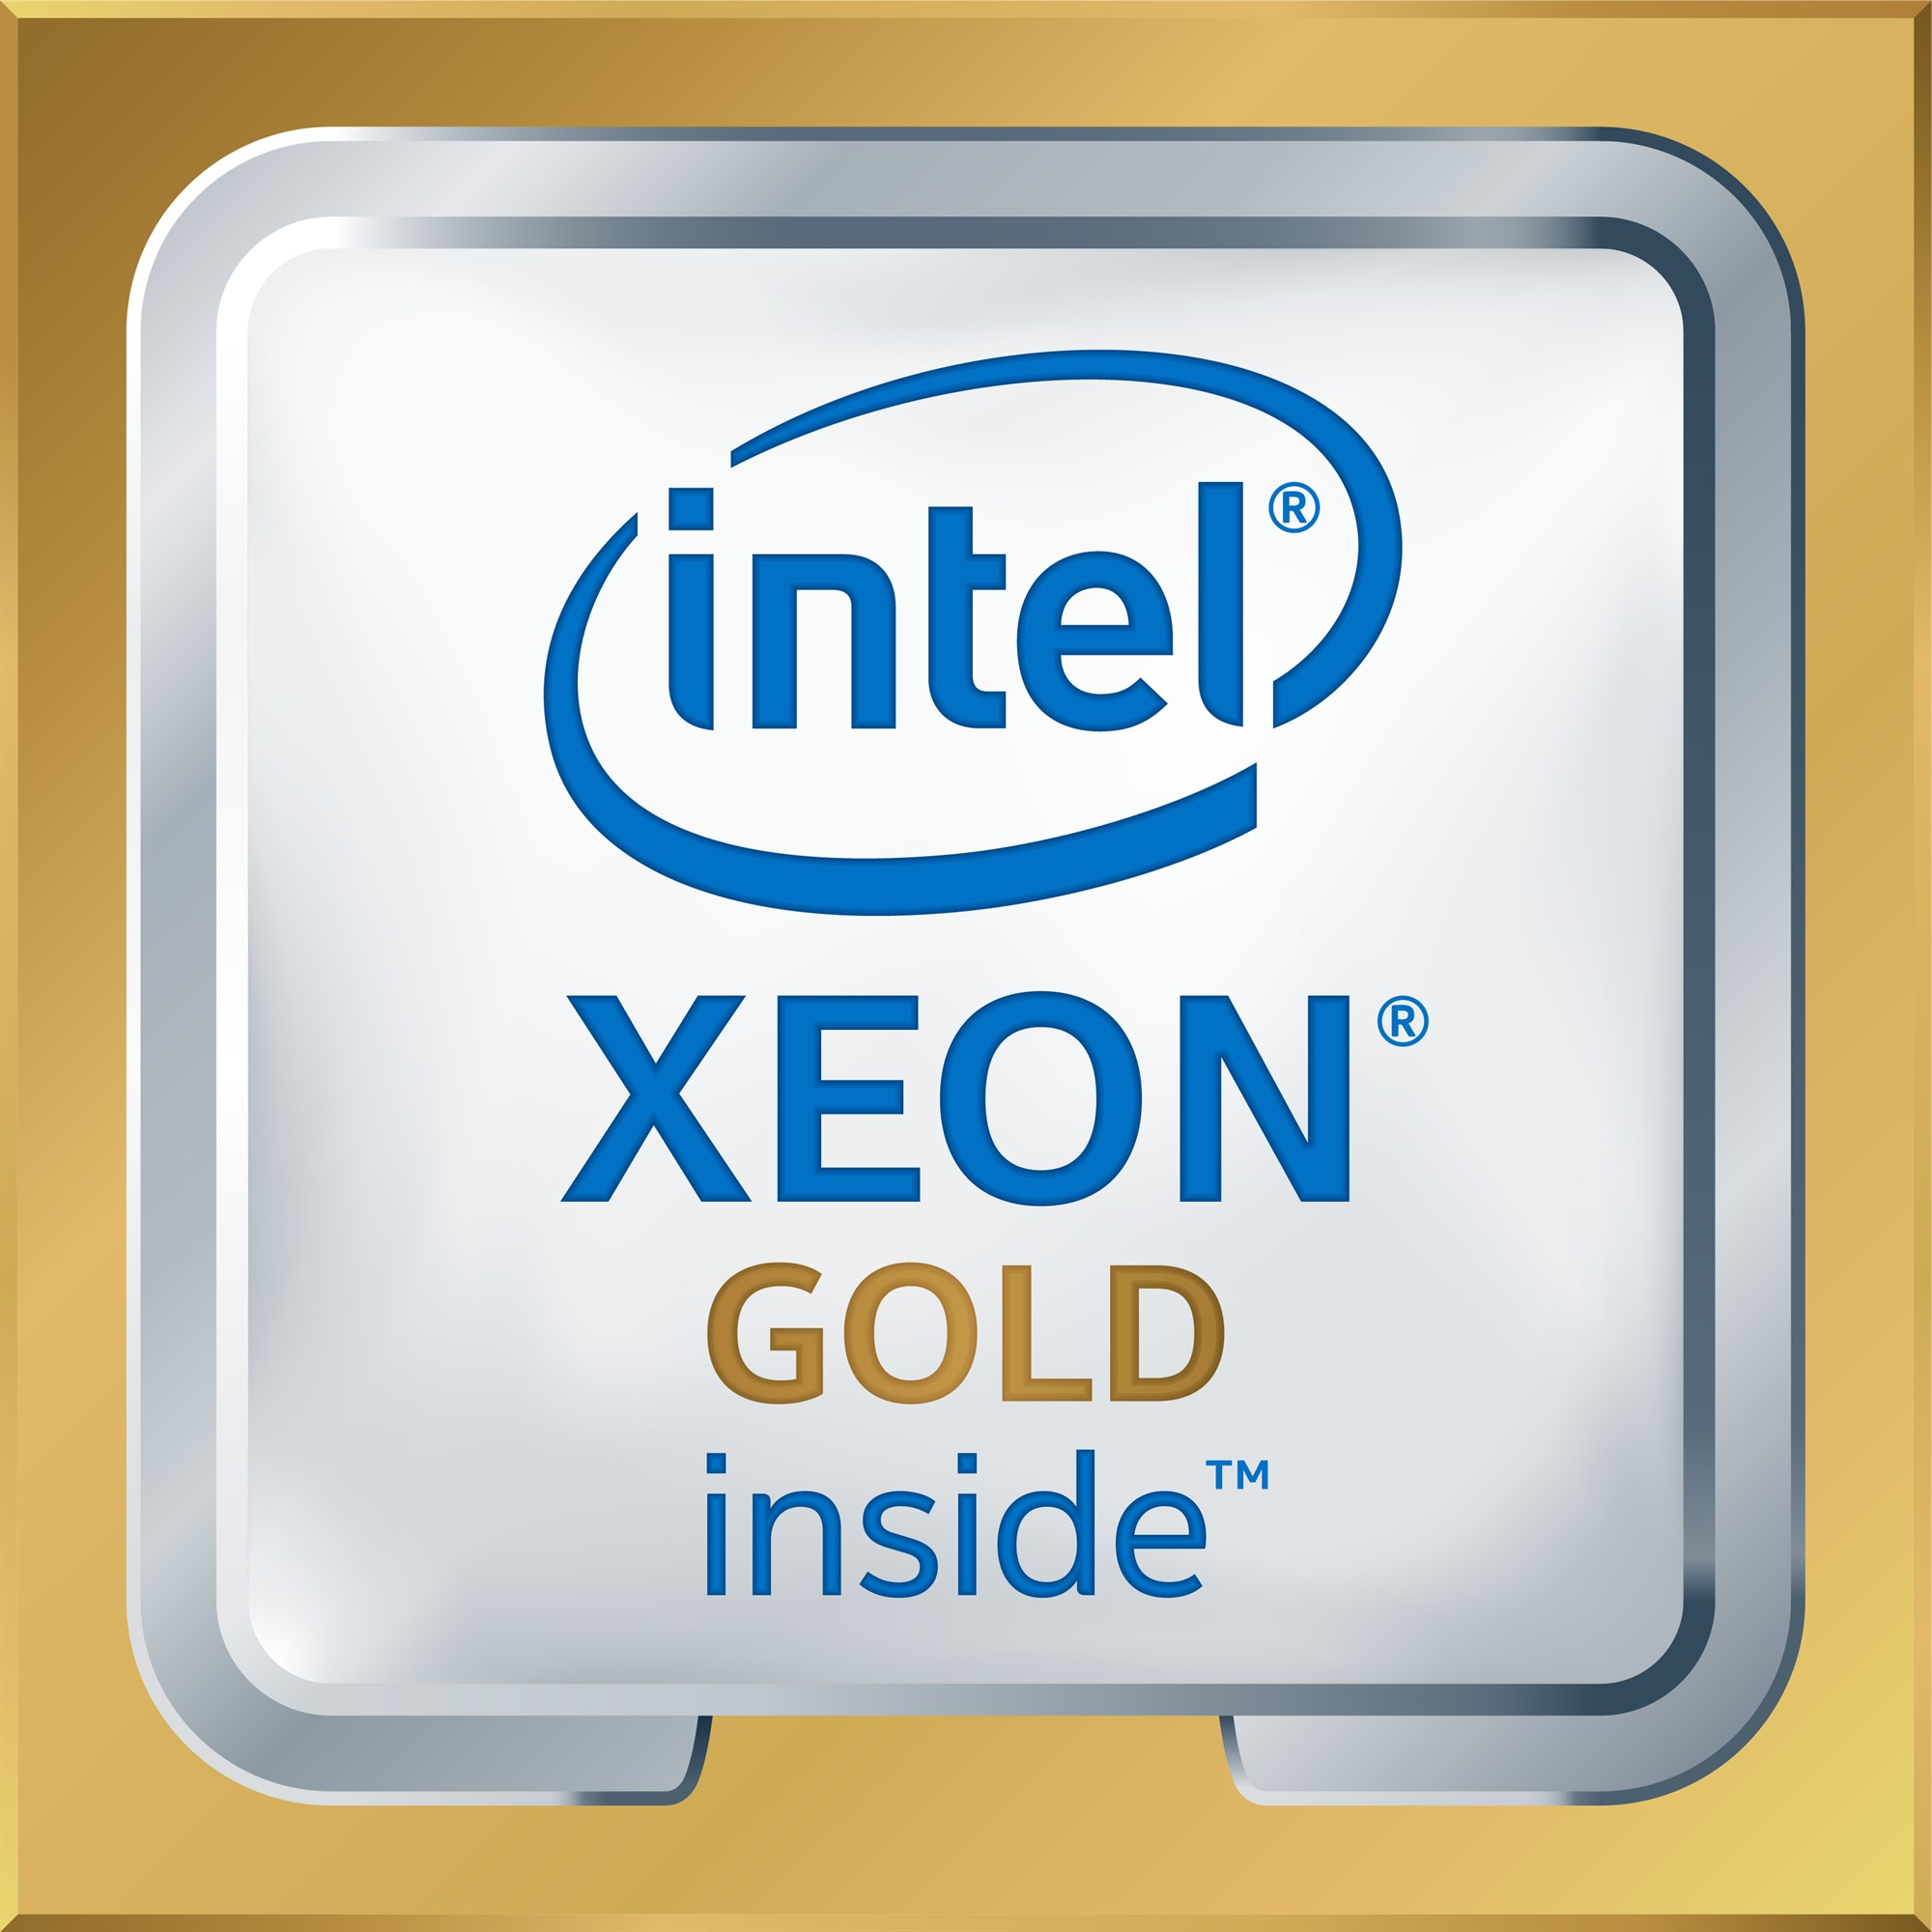 INTEL XEON GOLD 6134 PROCESSOR (24.75M CACHE, 3.20 GHZ) 3.2GHZ 24.75MB L3 BOX